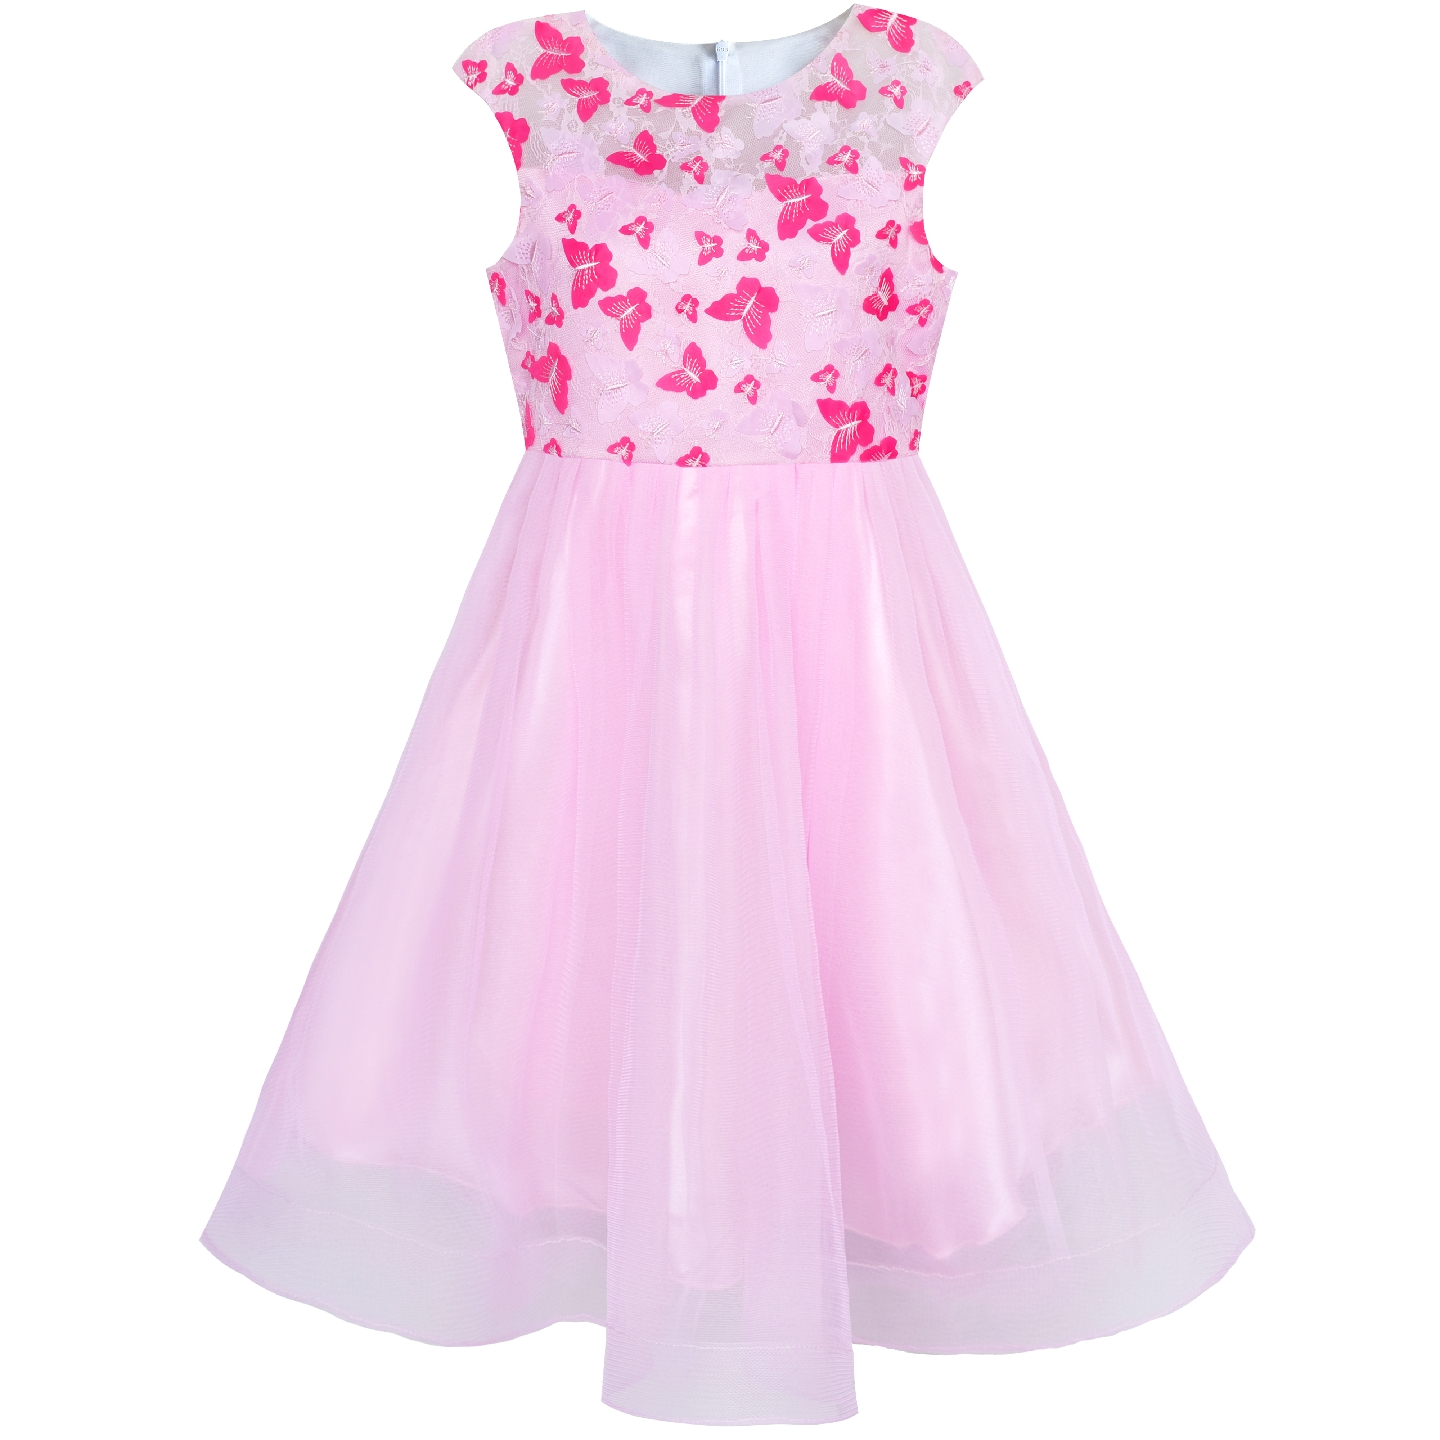 Flower Girl Dress Butterfly Pink Bridal Veil Wedding Bridesmaid 2019 Summer Princess Party Dresses Kids Clothes Pageant Sundress коммутатор allied telesis at gs950 24 управляемый 24xgblan 2xsfp